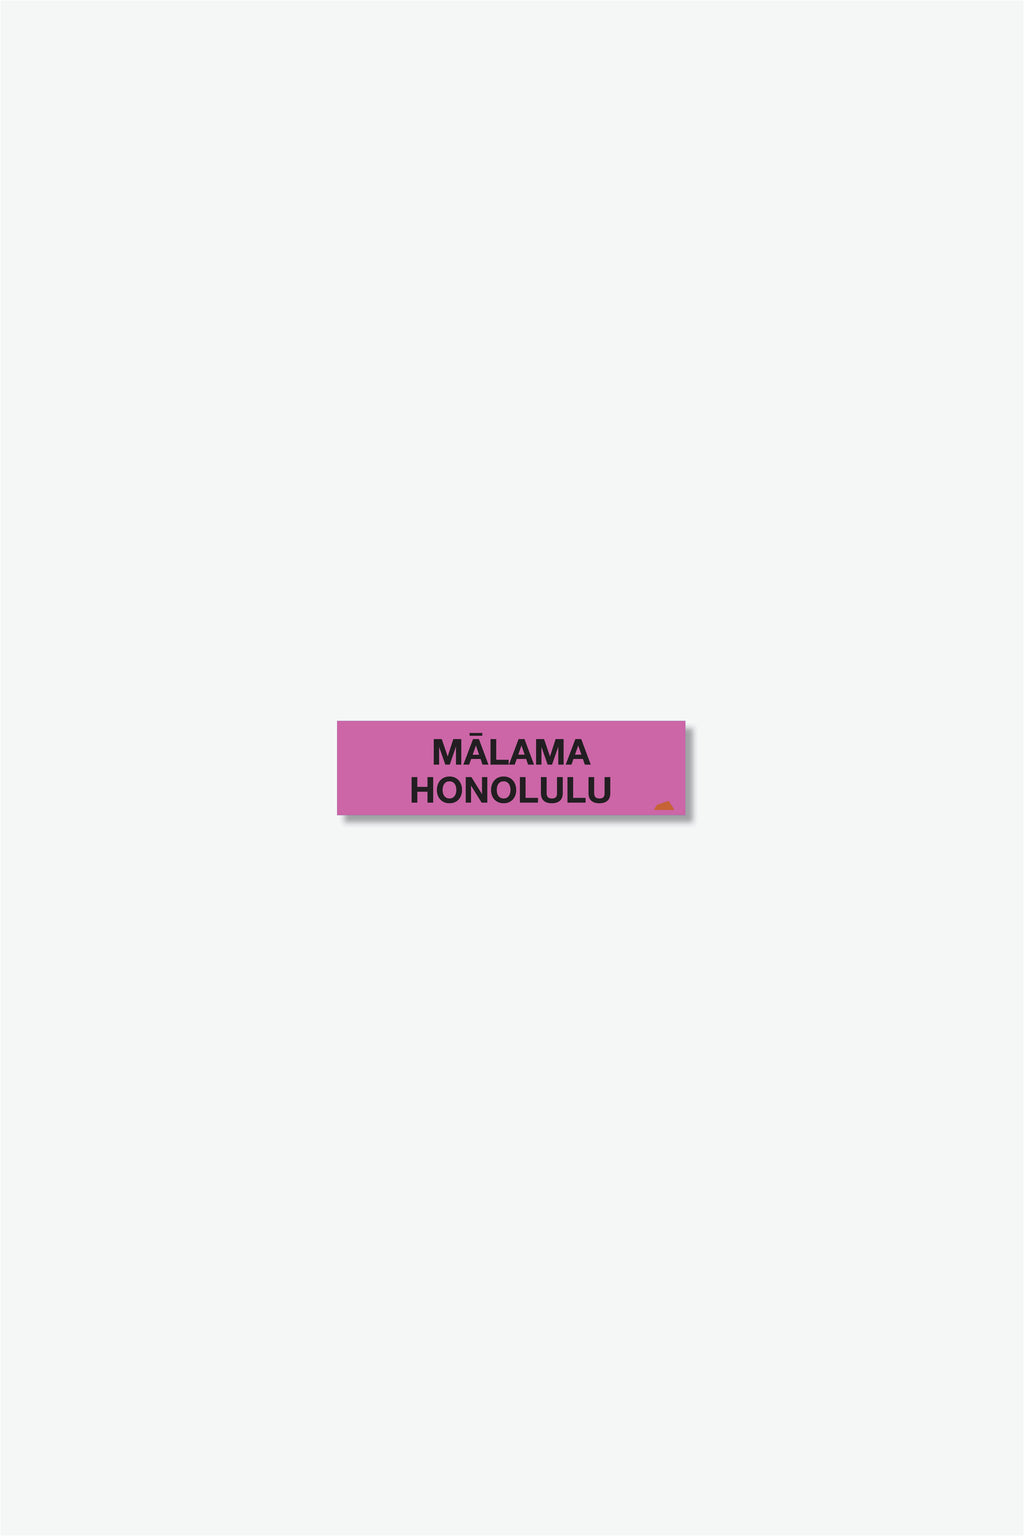 Mini Sticker - Mālama Honolulu - Magenta/Black